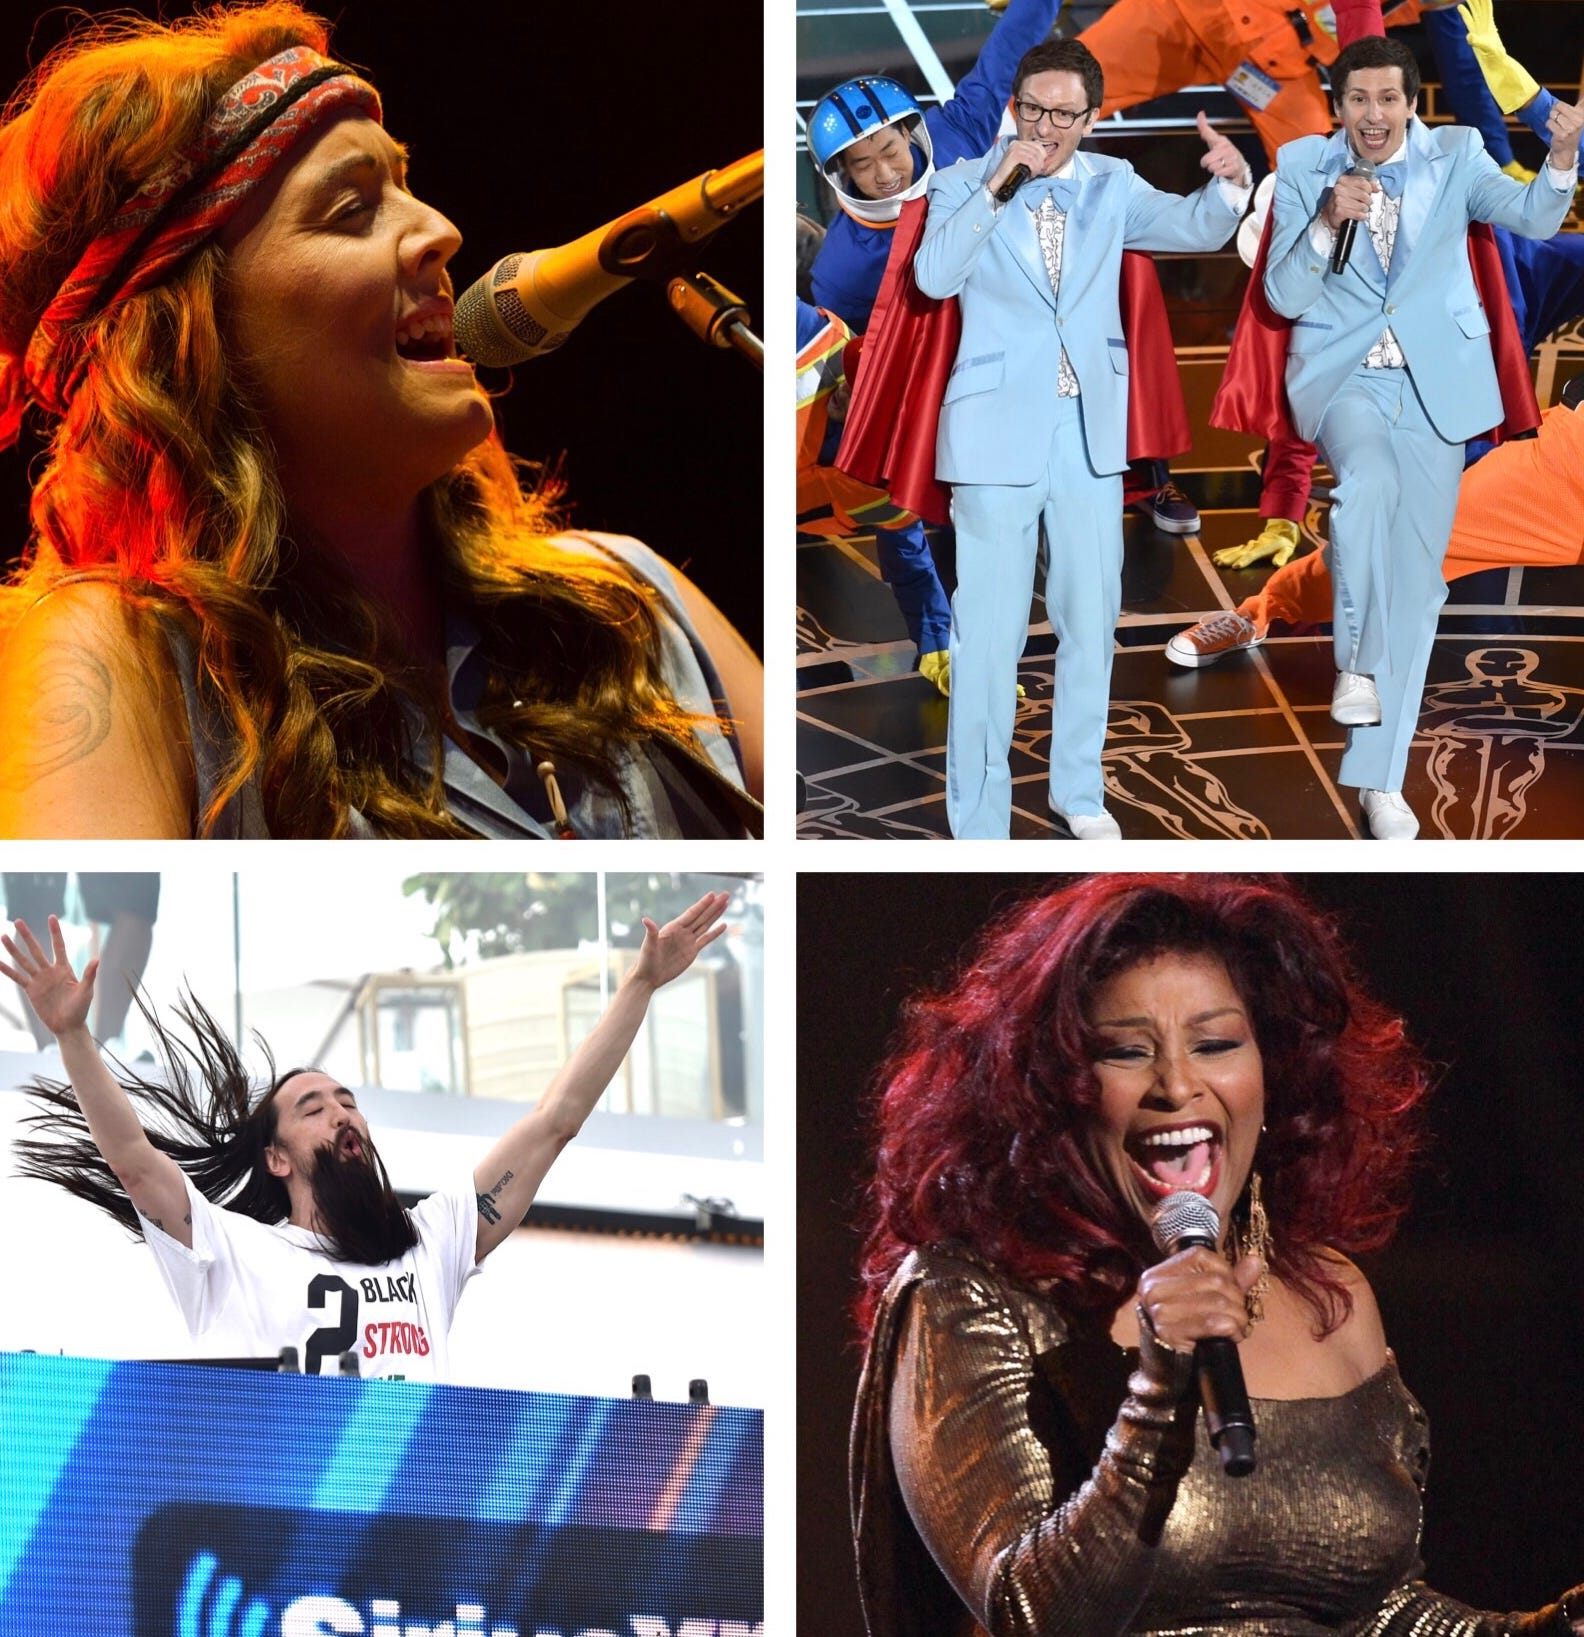 Summerfest finally comes to an end on July 7